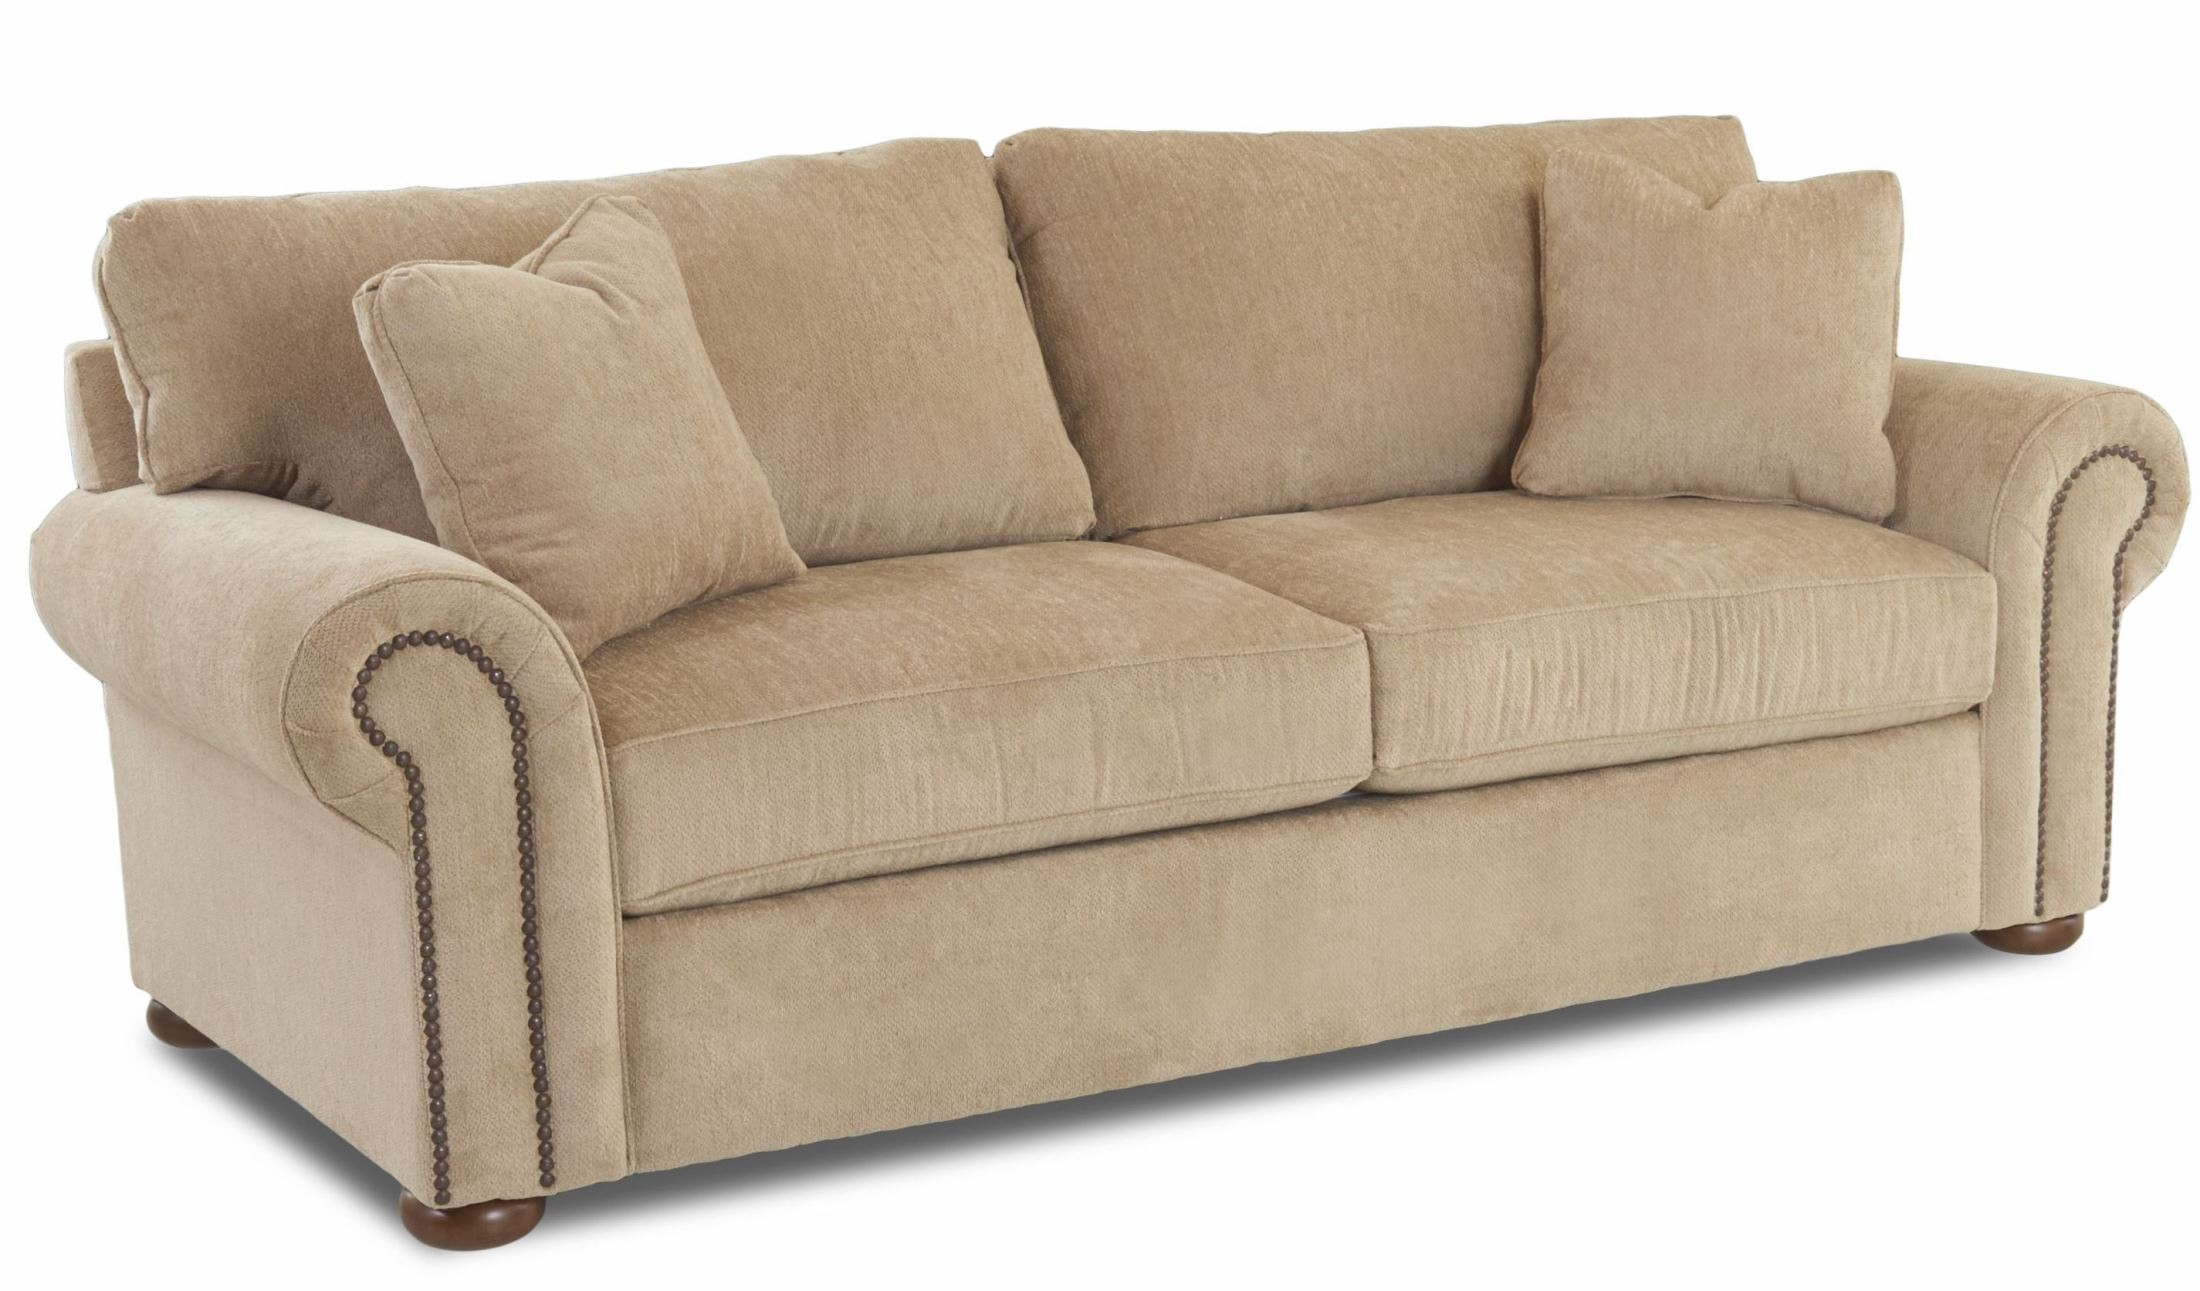 oatmeal sofa leather singapore cheap sienna furby from klaussner coleman furniture